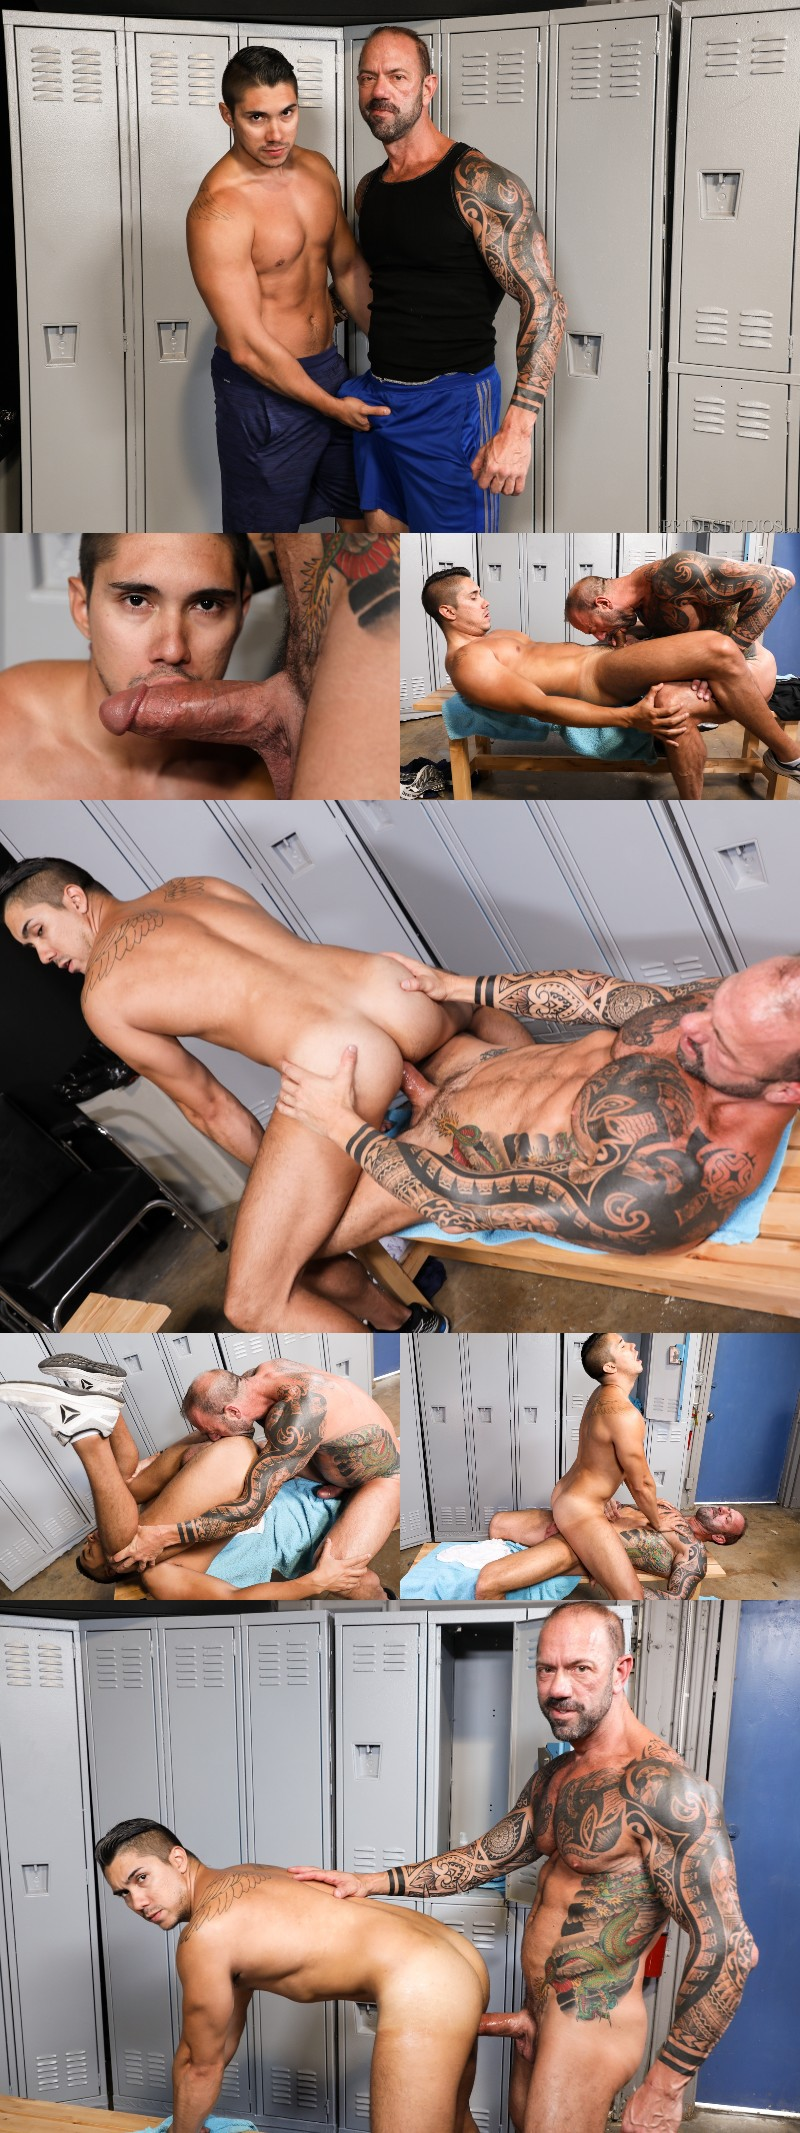 Adrian Suarez Rides Vic Rocco's Fat Cock in the Locker Room